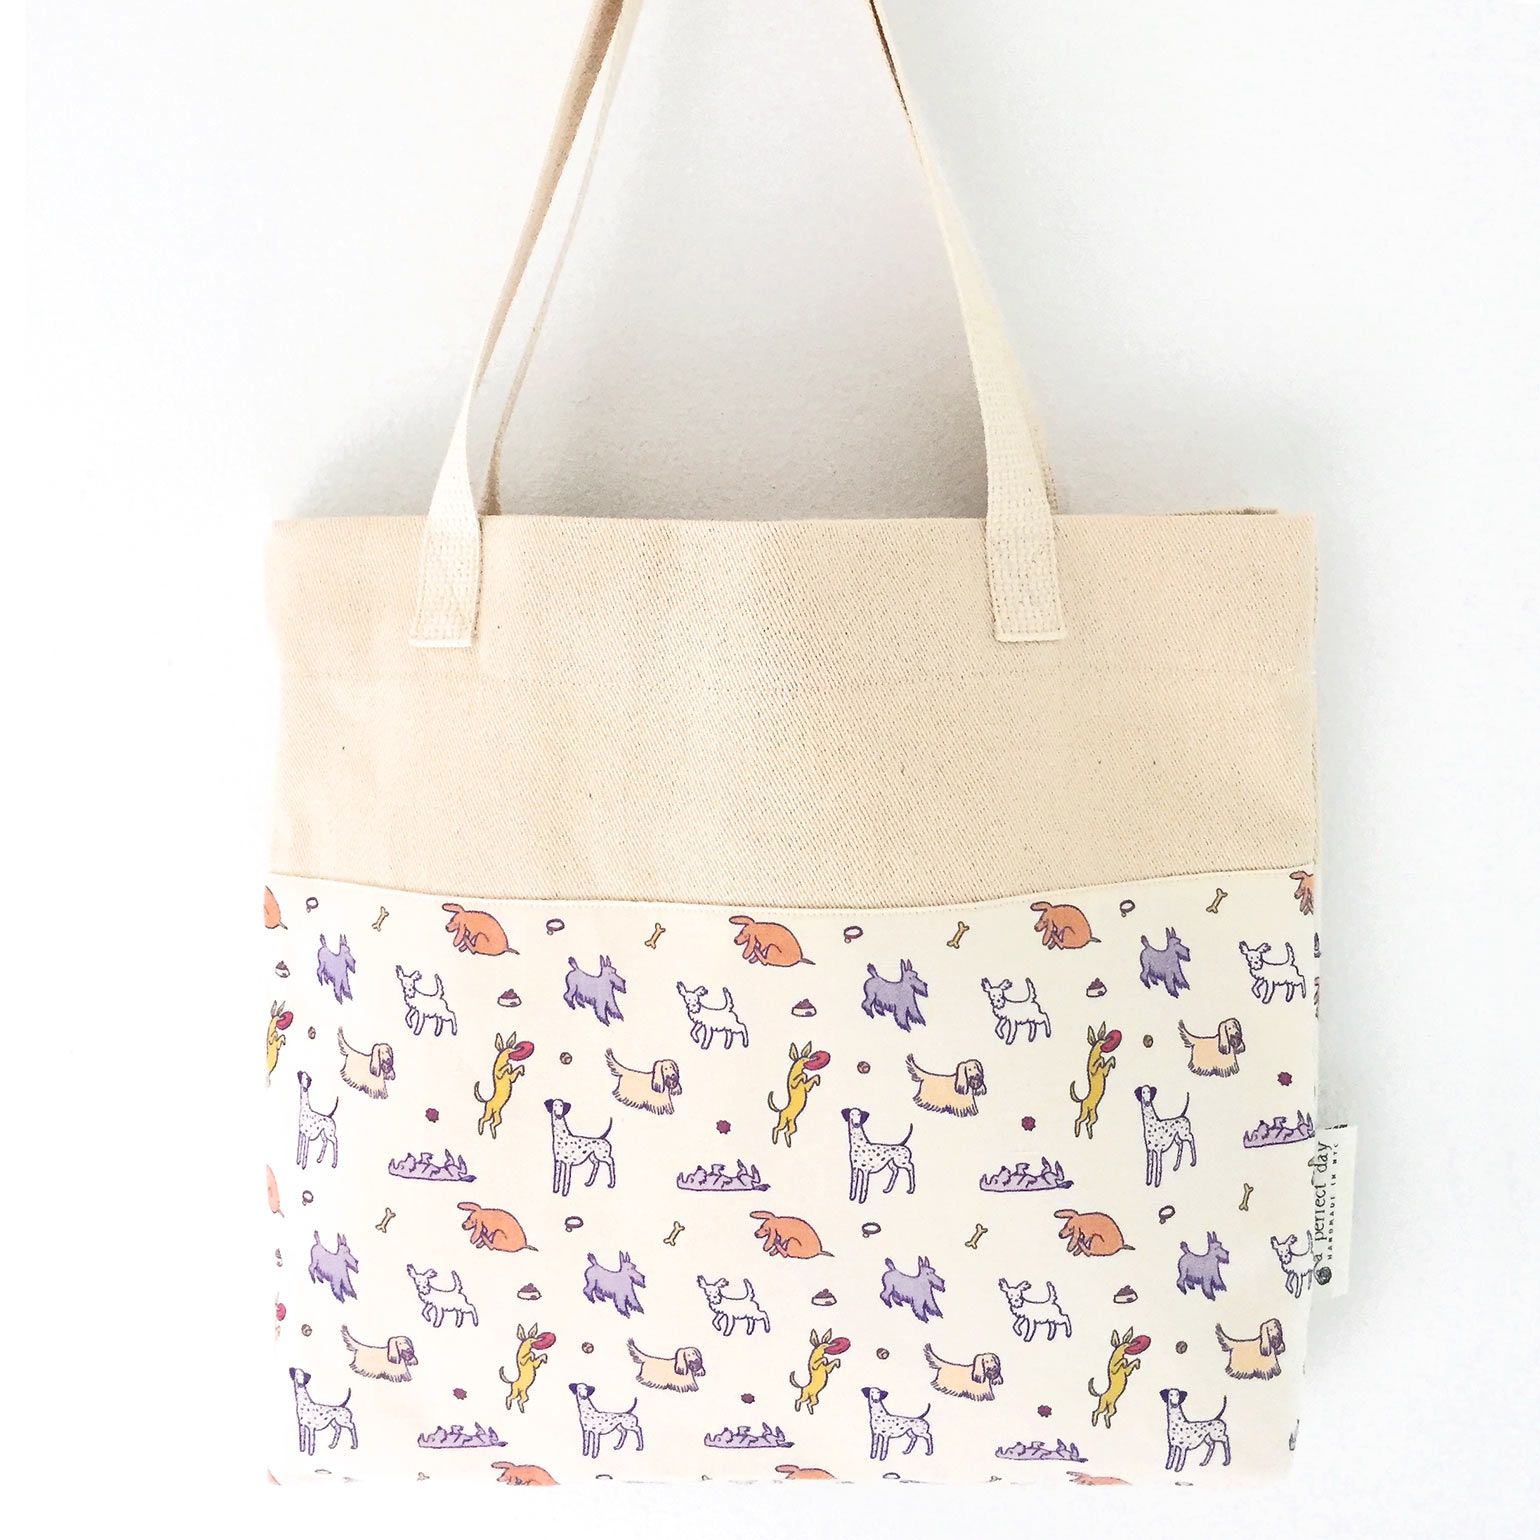 2017APerfectDay_Happy_Dogs_Tote1540px